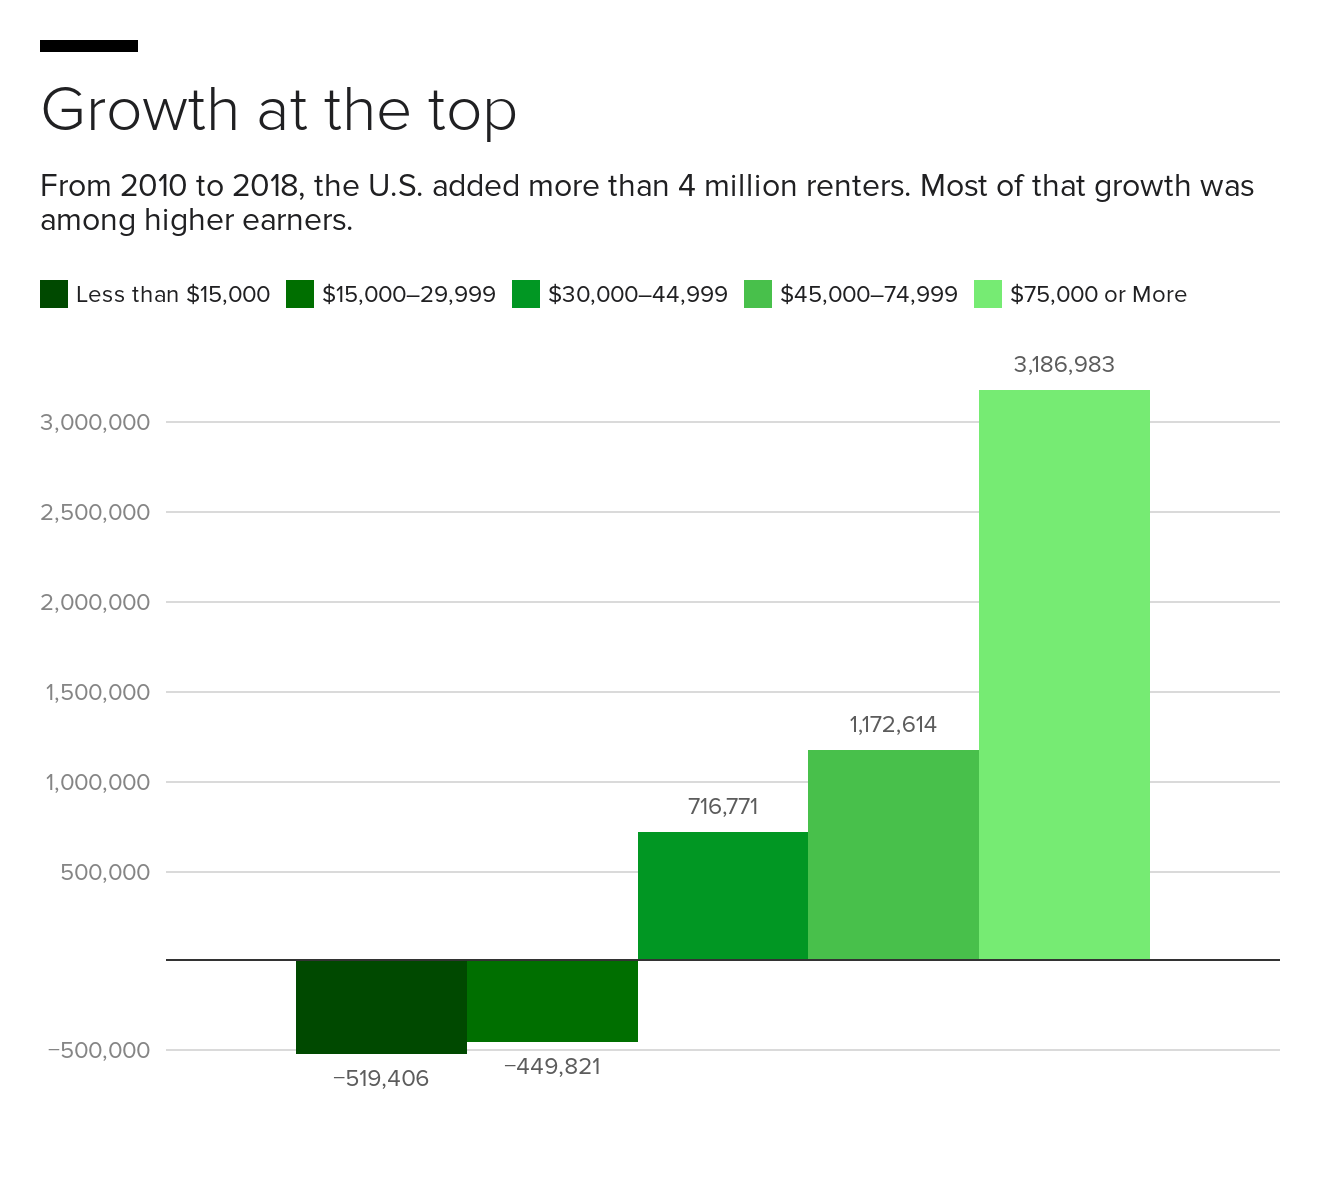 euep6-growth-at-the-top.png